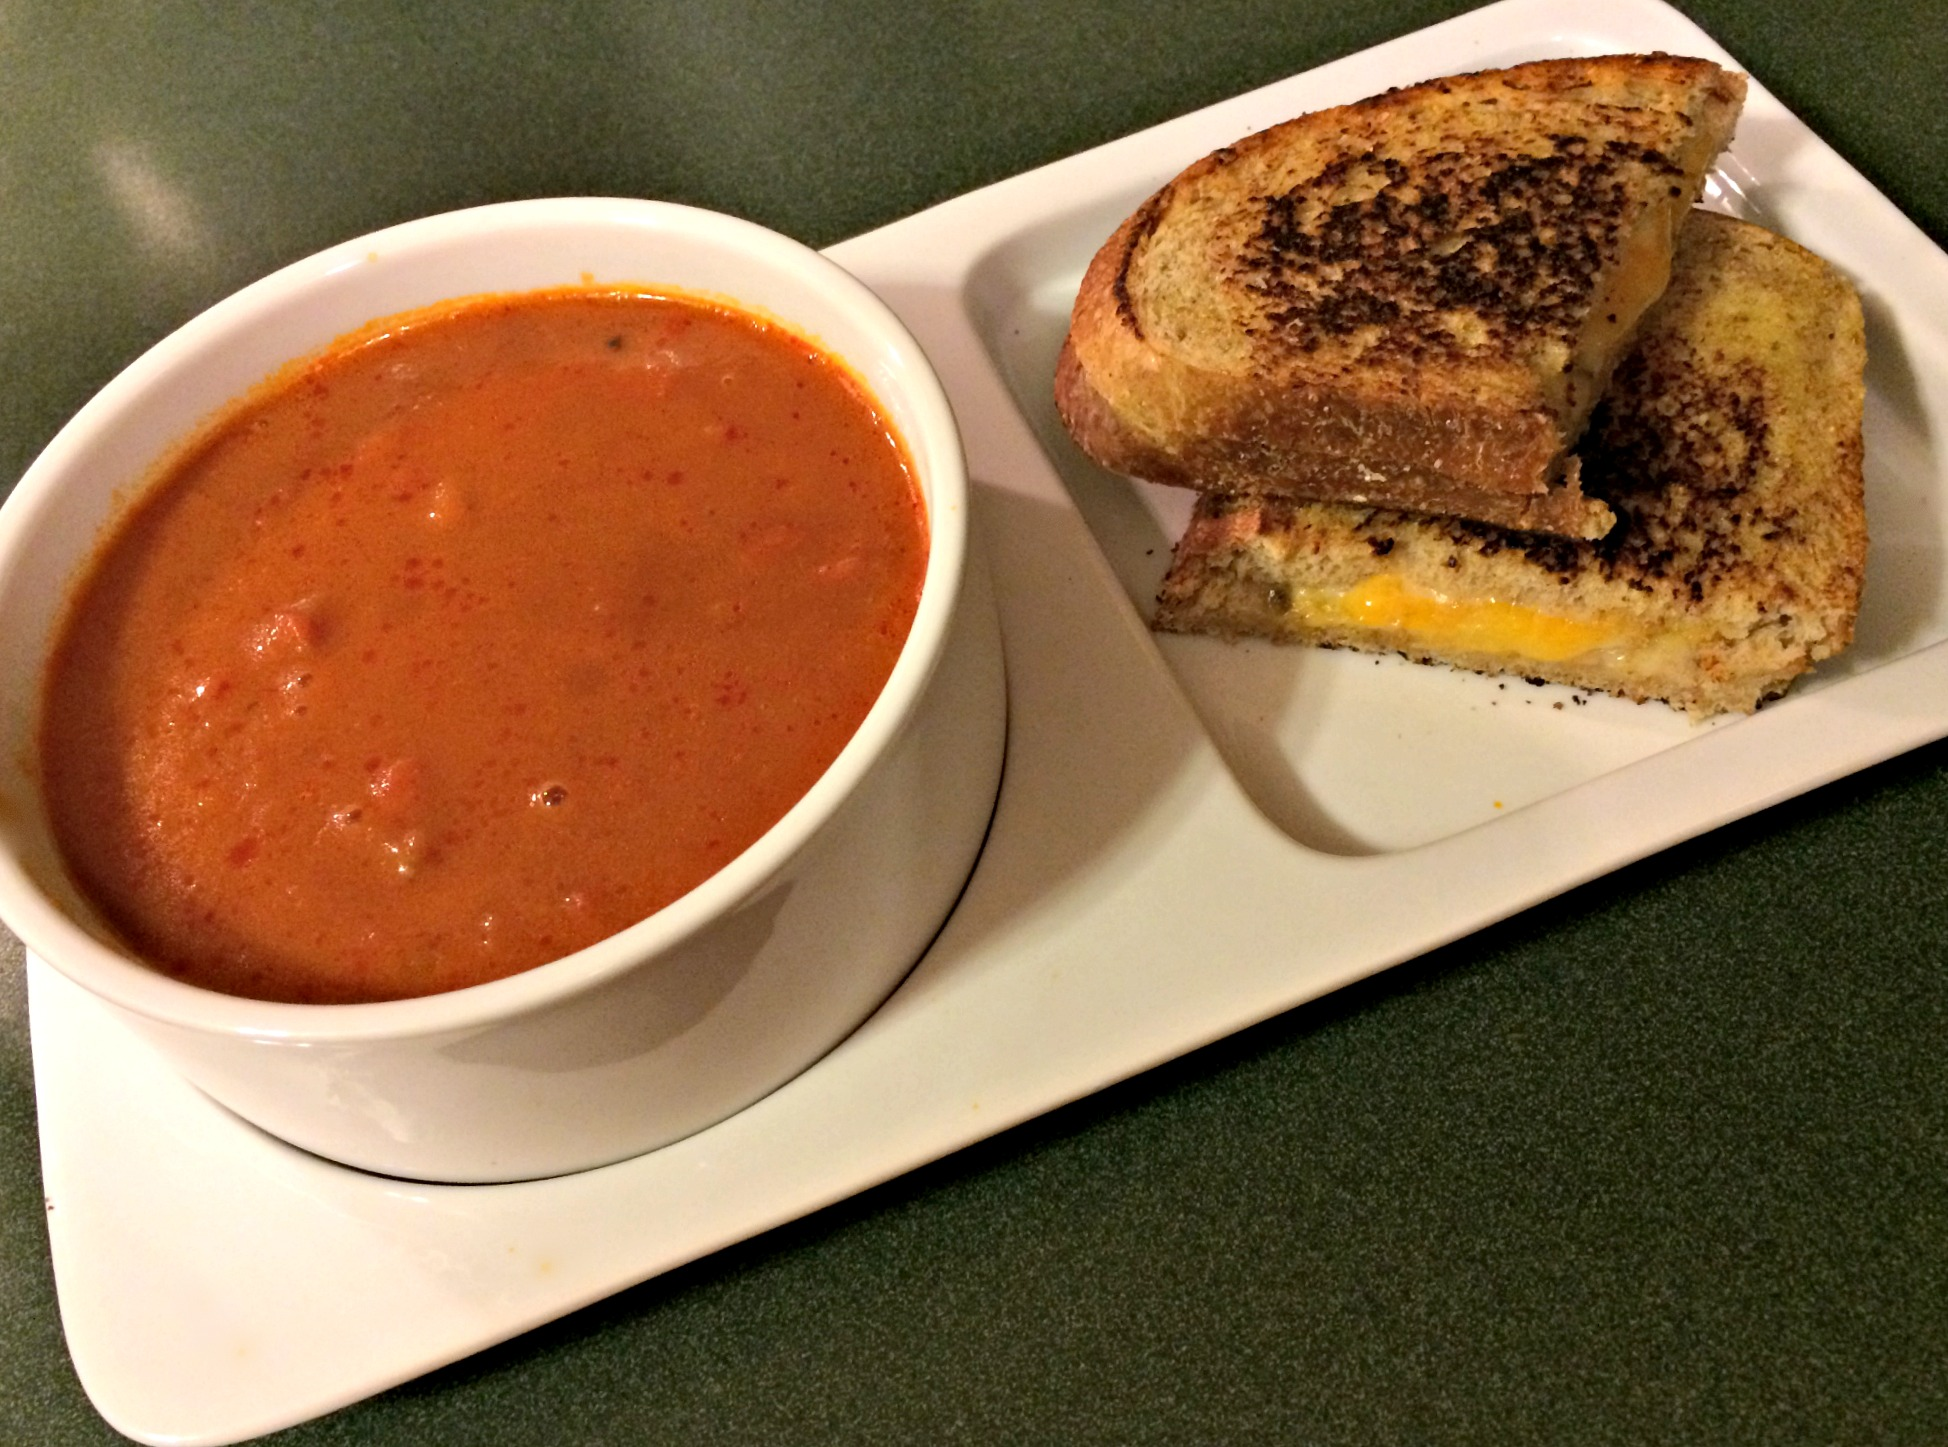 grilled cheese and roasted red pepper soup